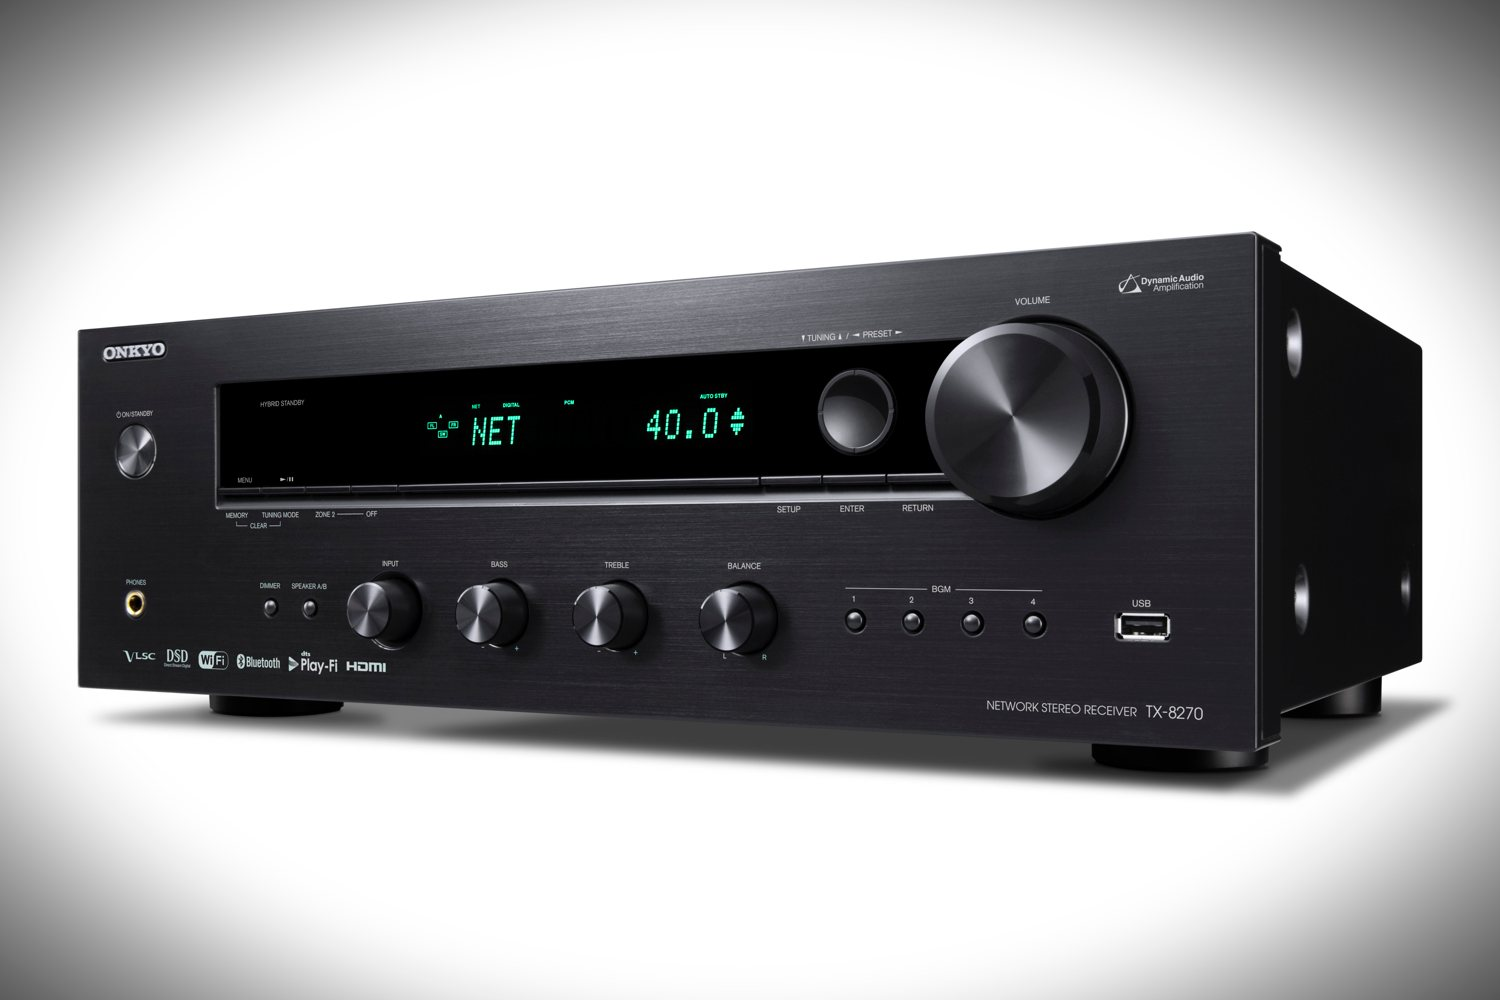 onkyo 8160. onkyo\u0027s latest stereo receiver supports hi-res audio and wireless multiroom onkyo 8160